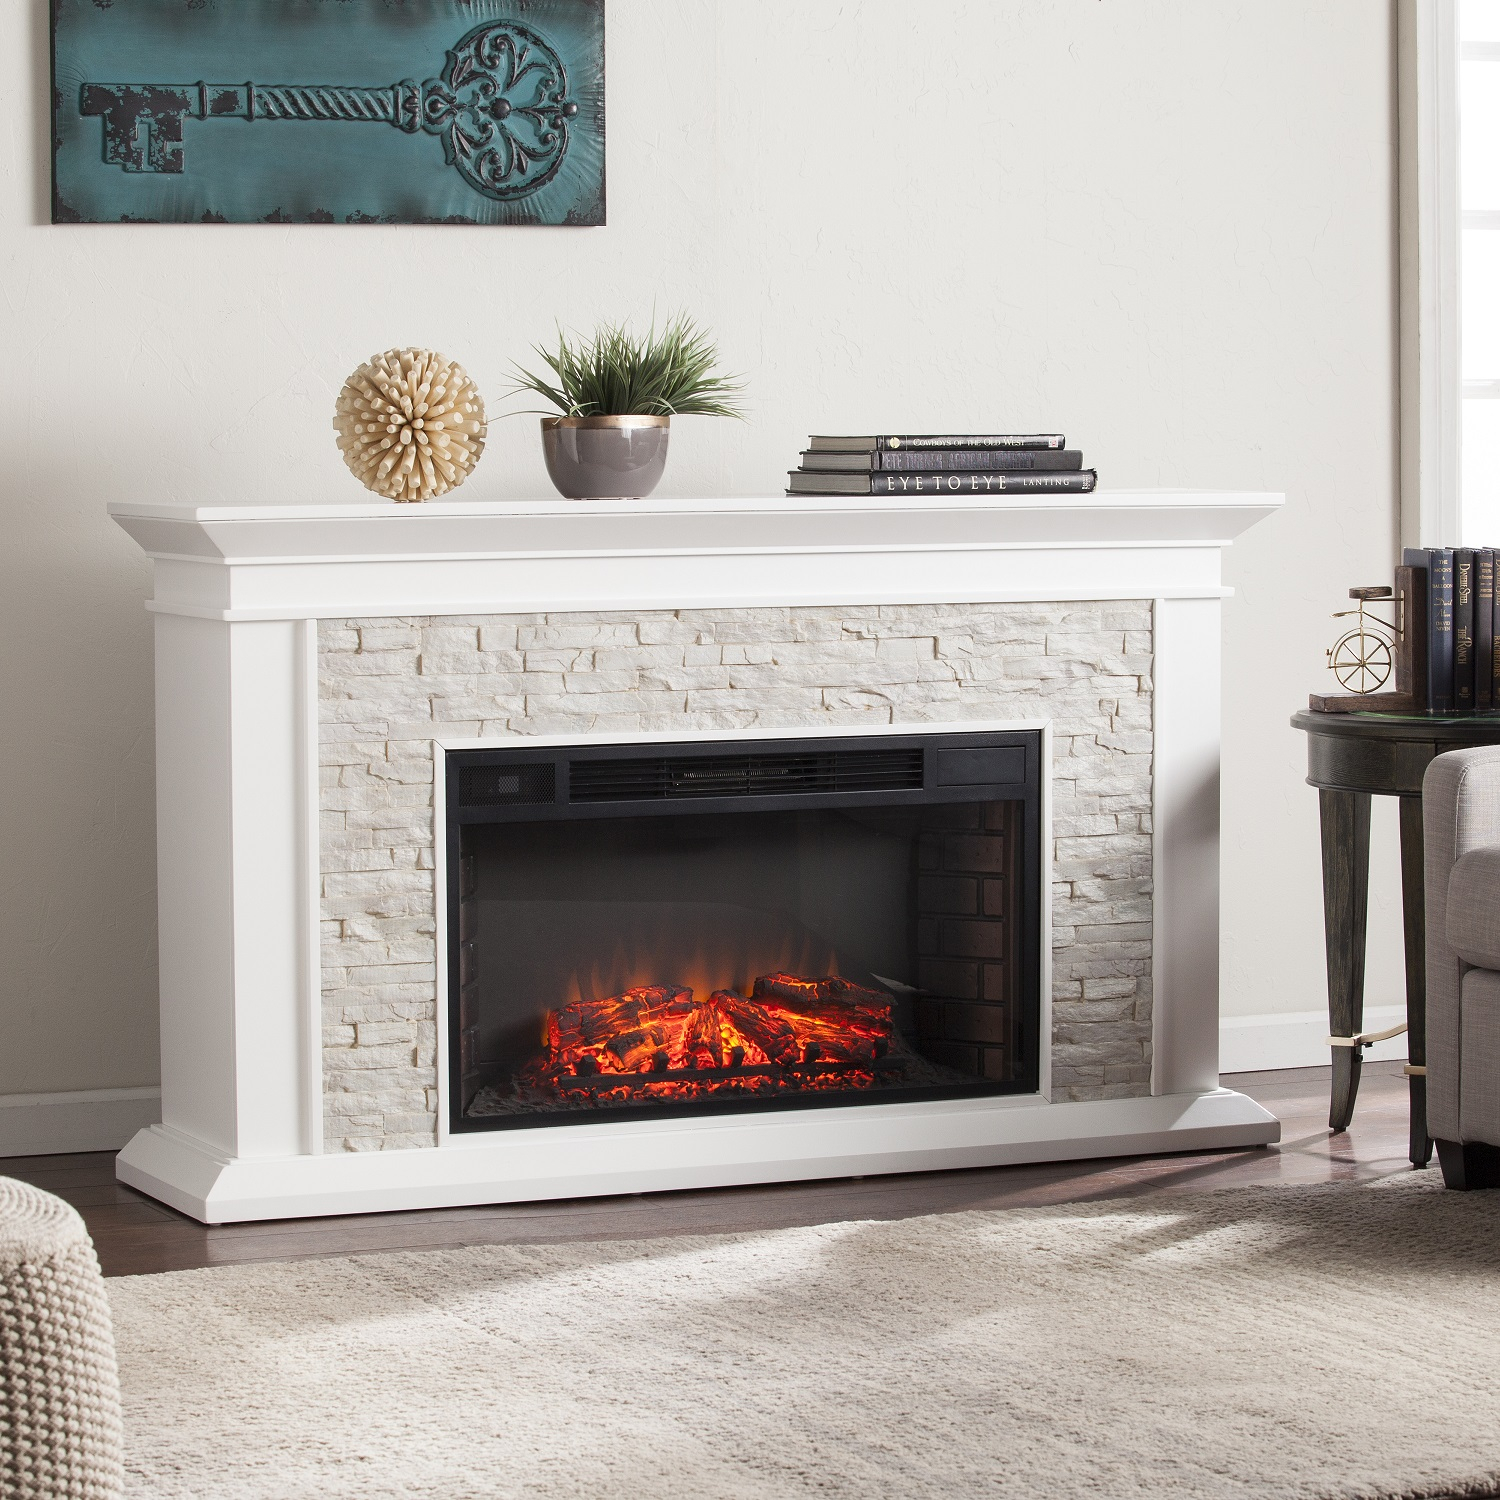 Wonderful 60 Inch Electric Fireplace Canyon Height Simulated Stone intended for Canyon 74 Inch Tv Stands (Image 29 of 30)